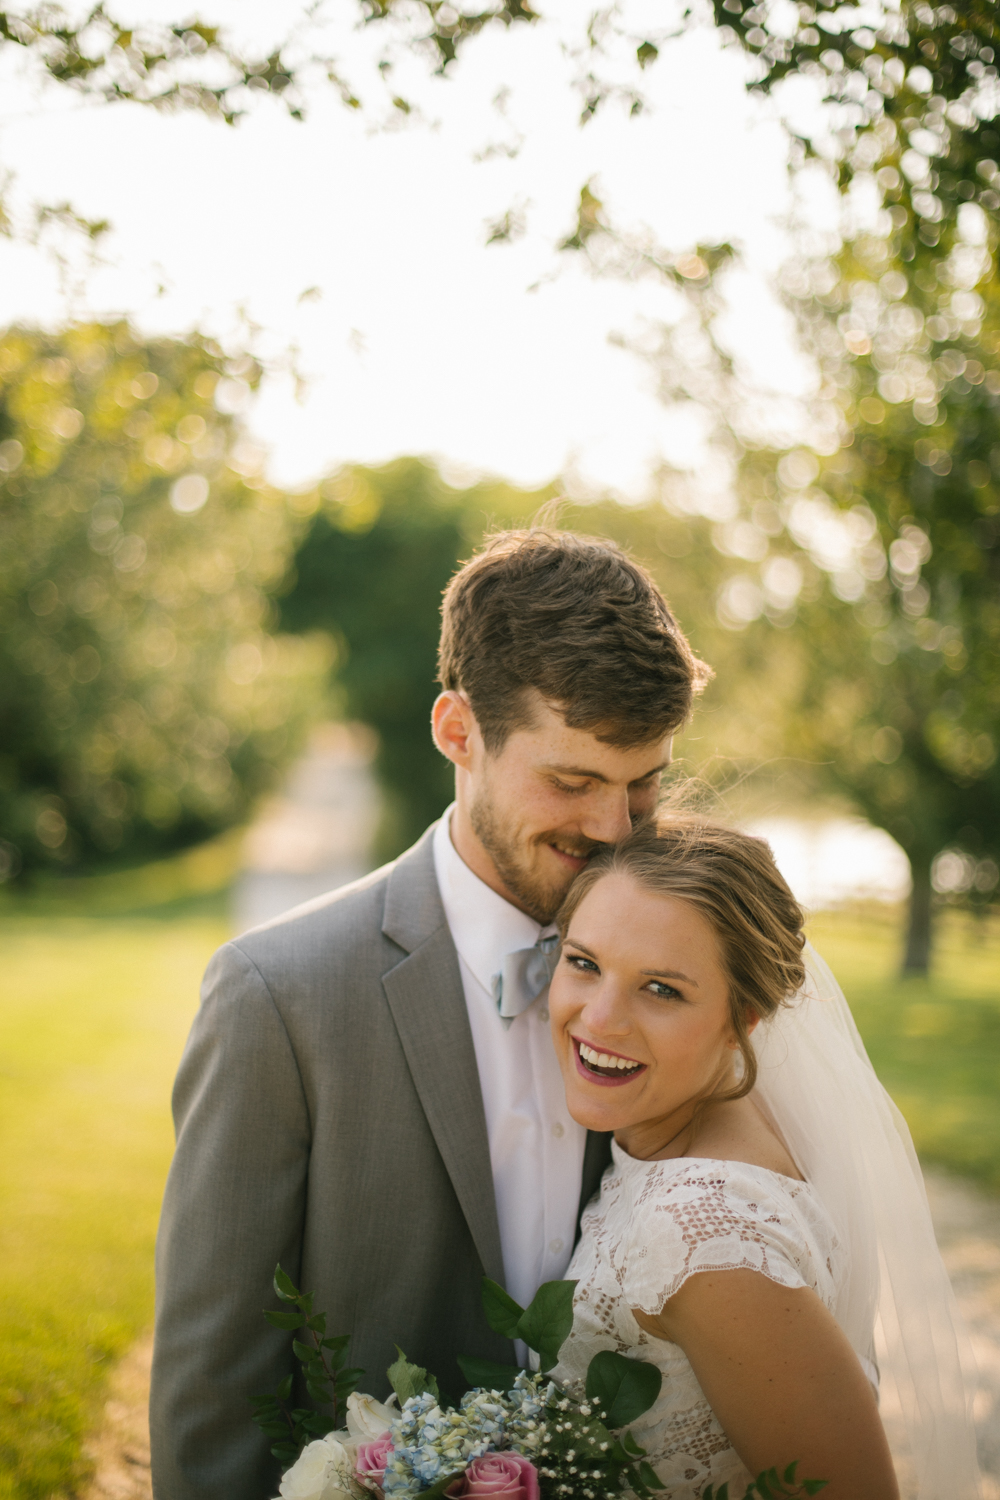 2019.06.01_CraskWedding_Starks-154.jpg